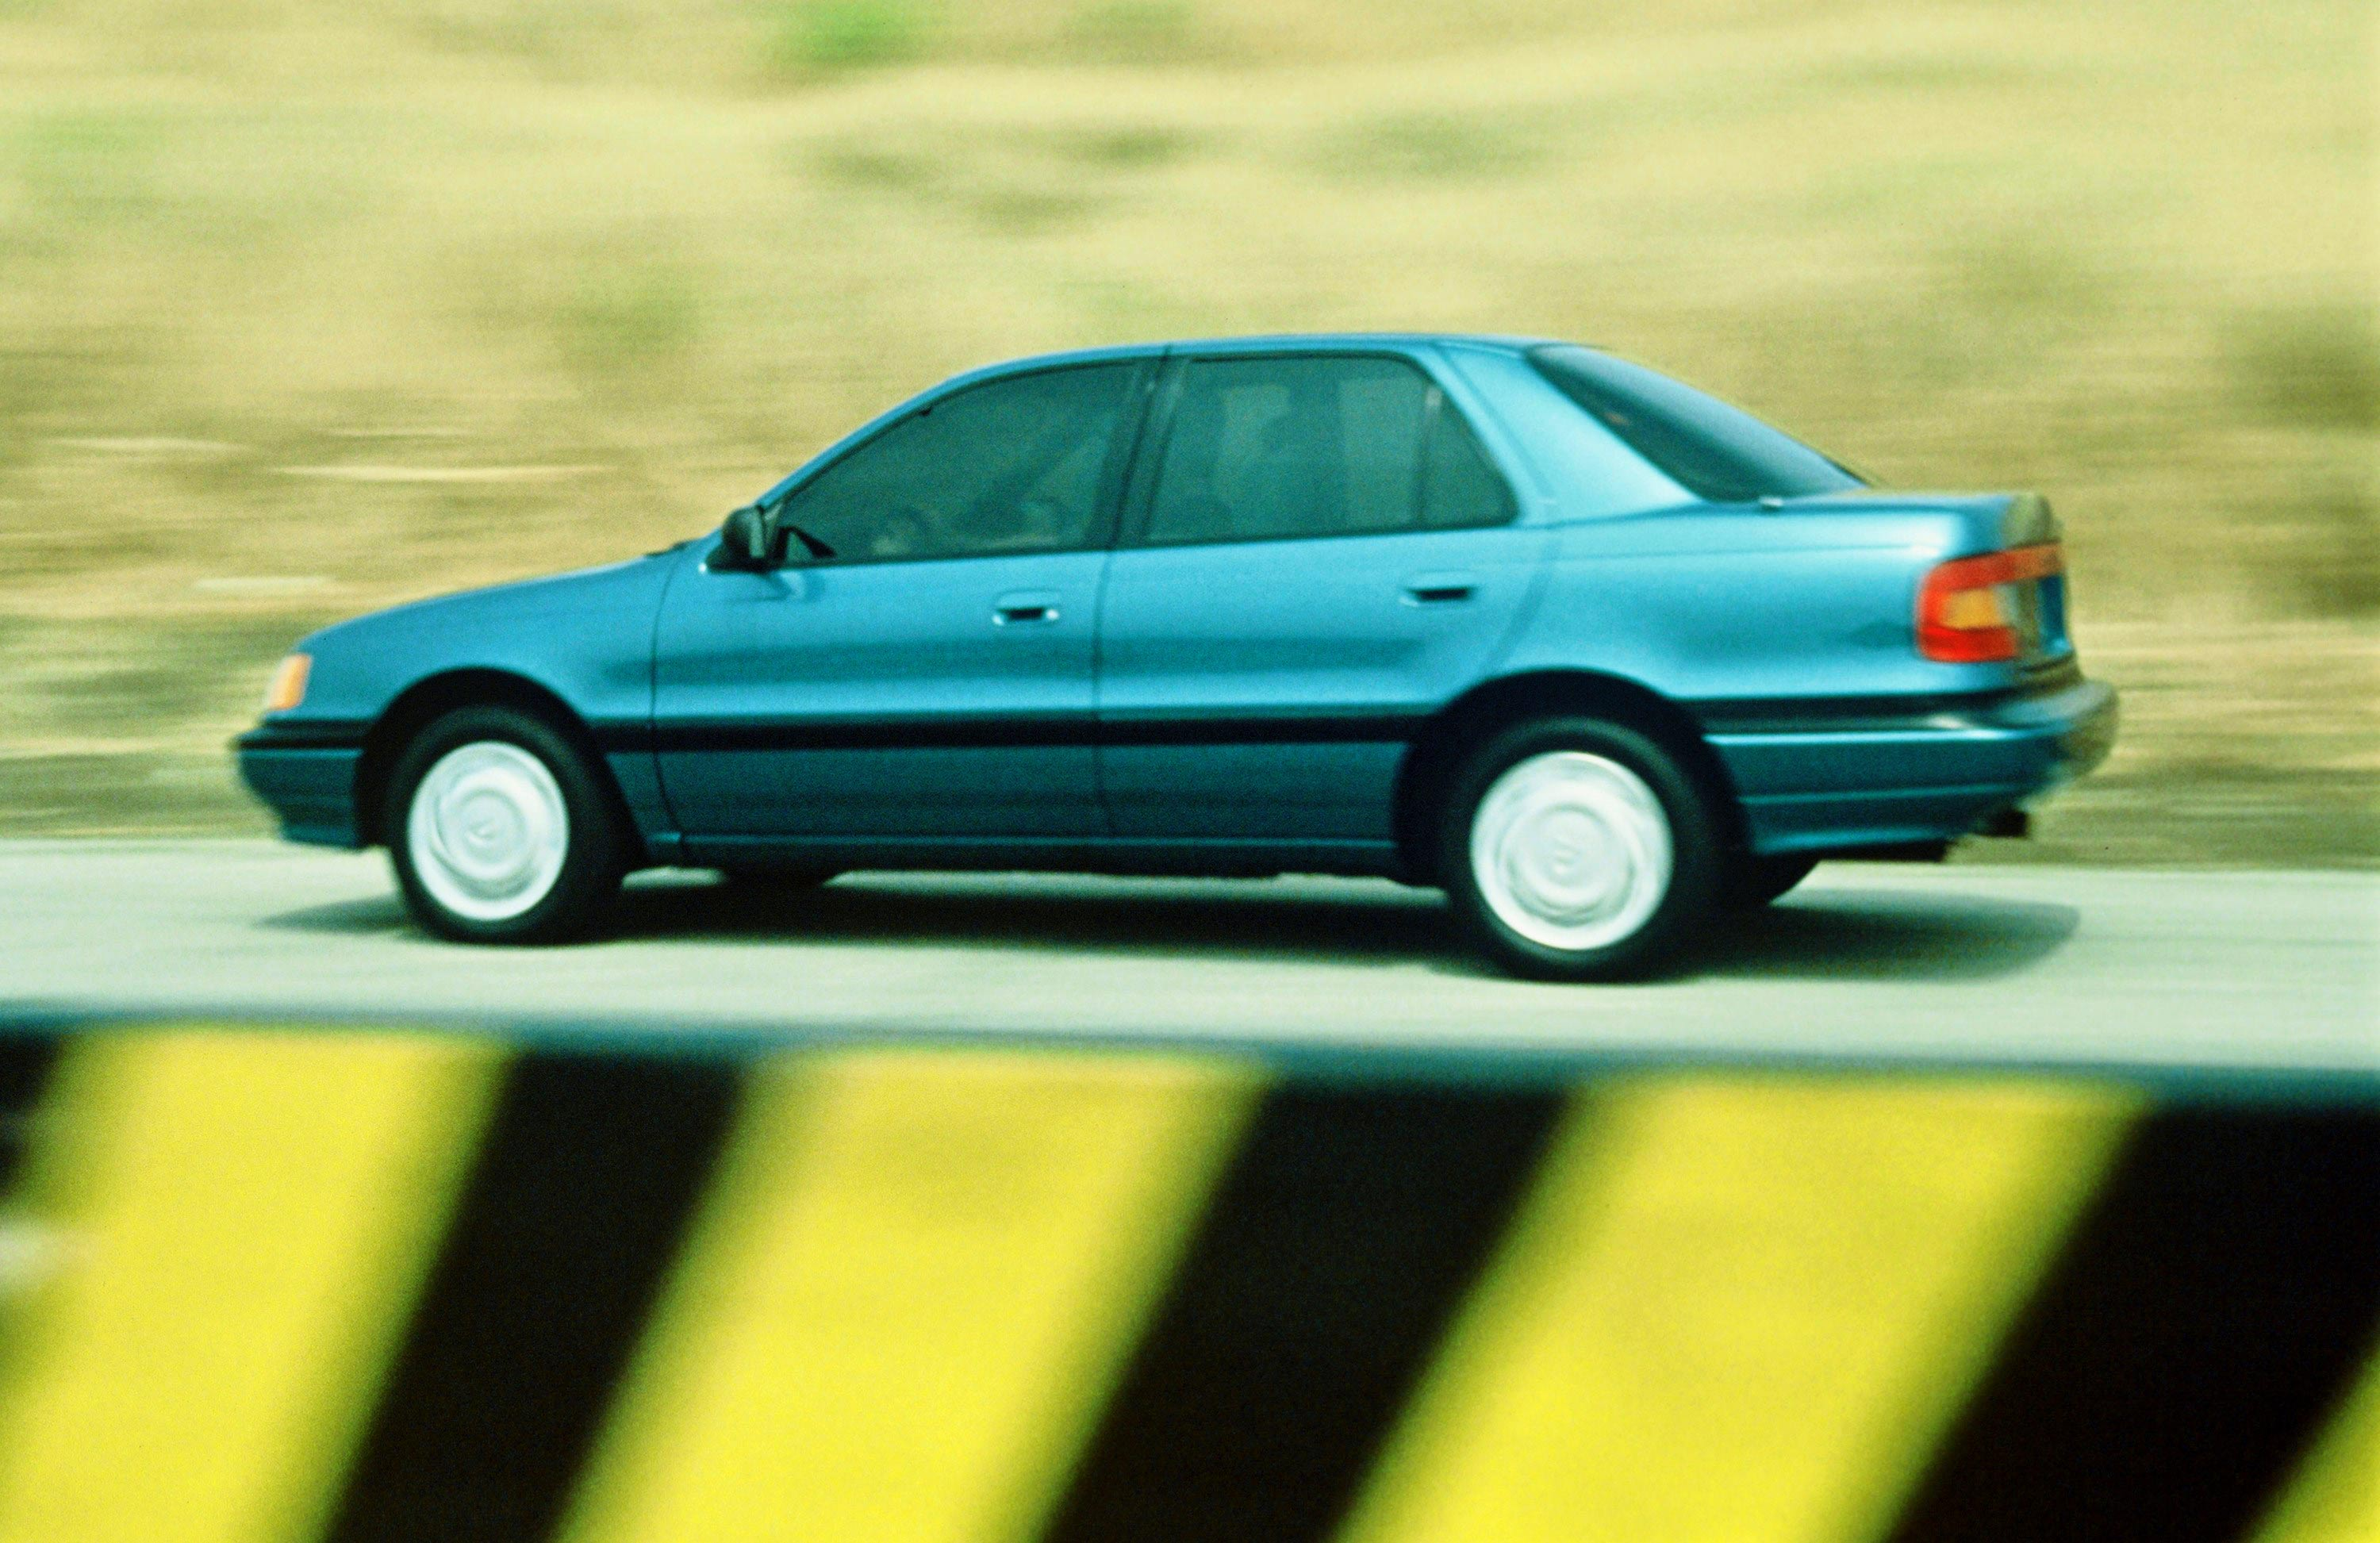 Hyundai Elantra 1.6 1992 photo - 2